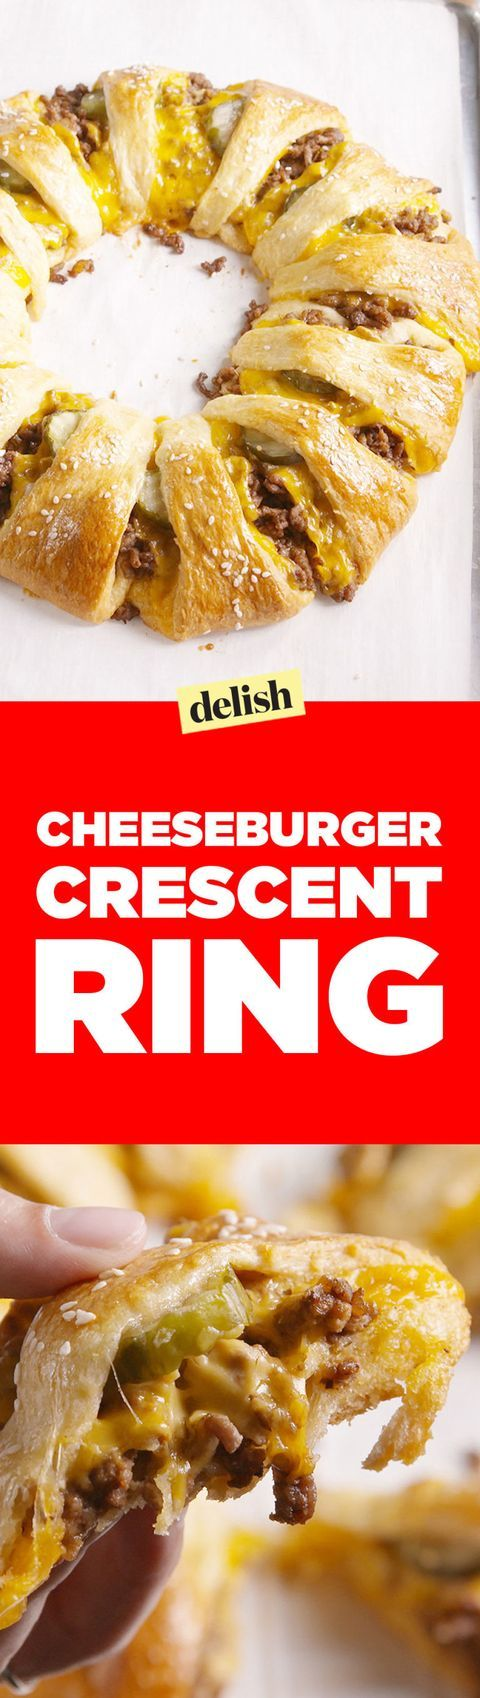 This Cheeseburger Ring Is The Ultimate Way To Express Your Love